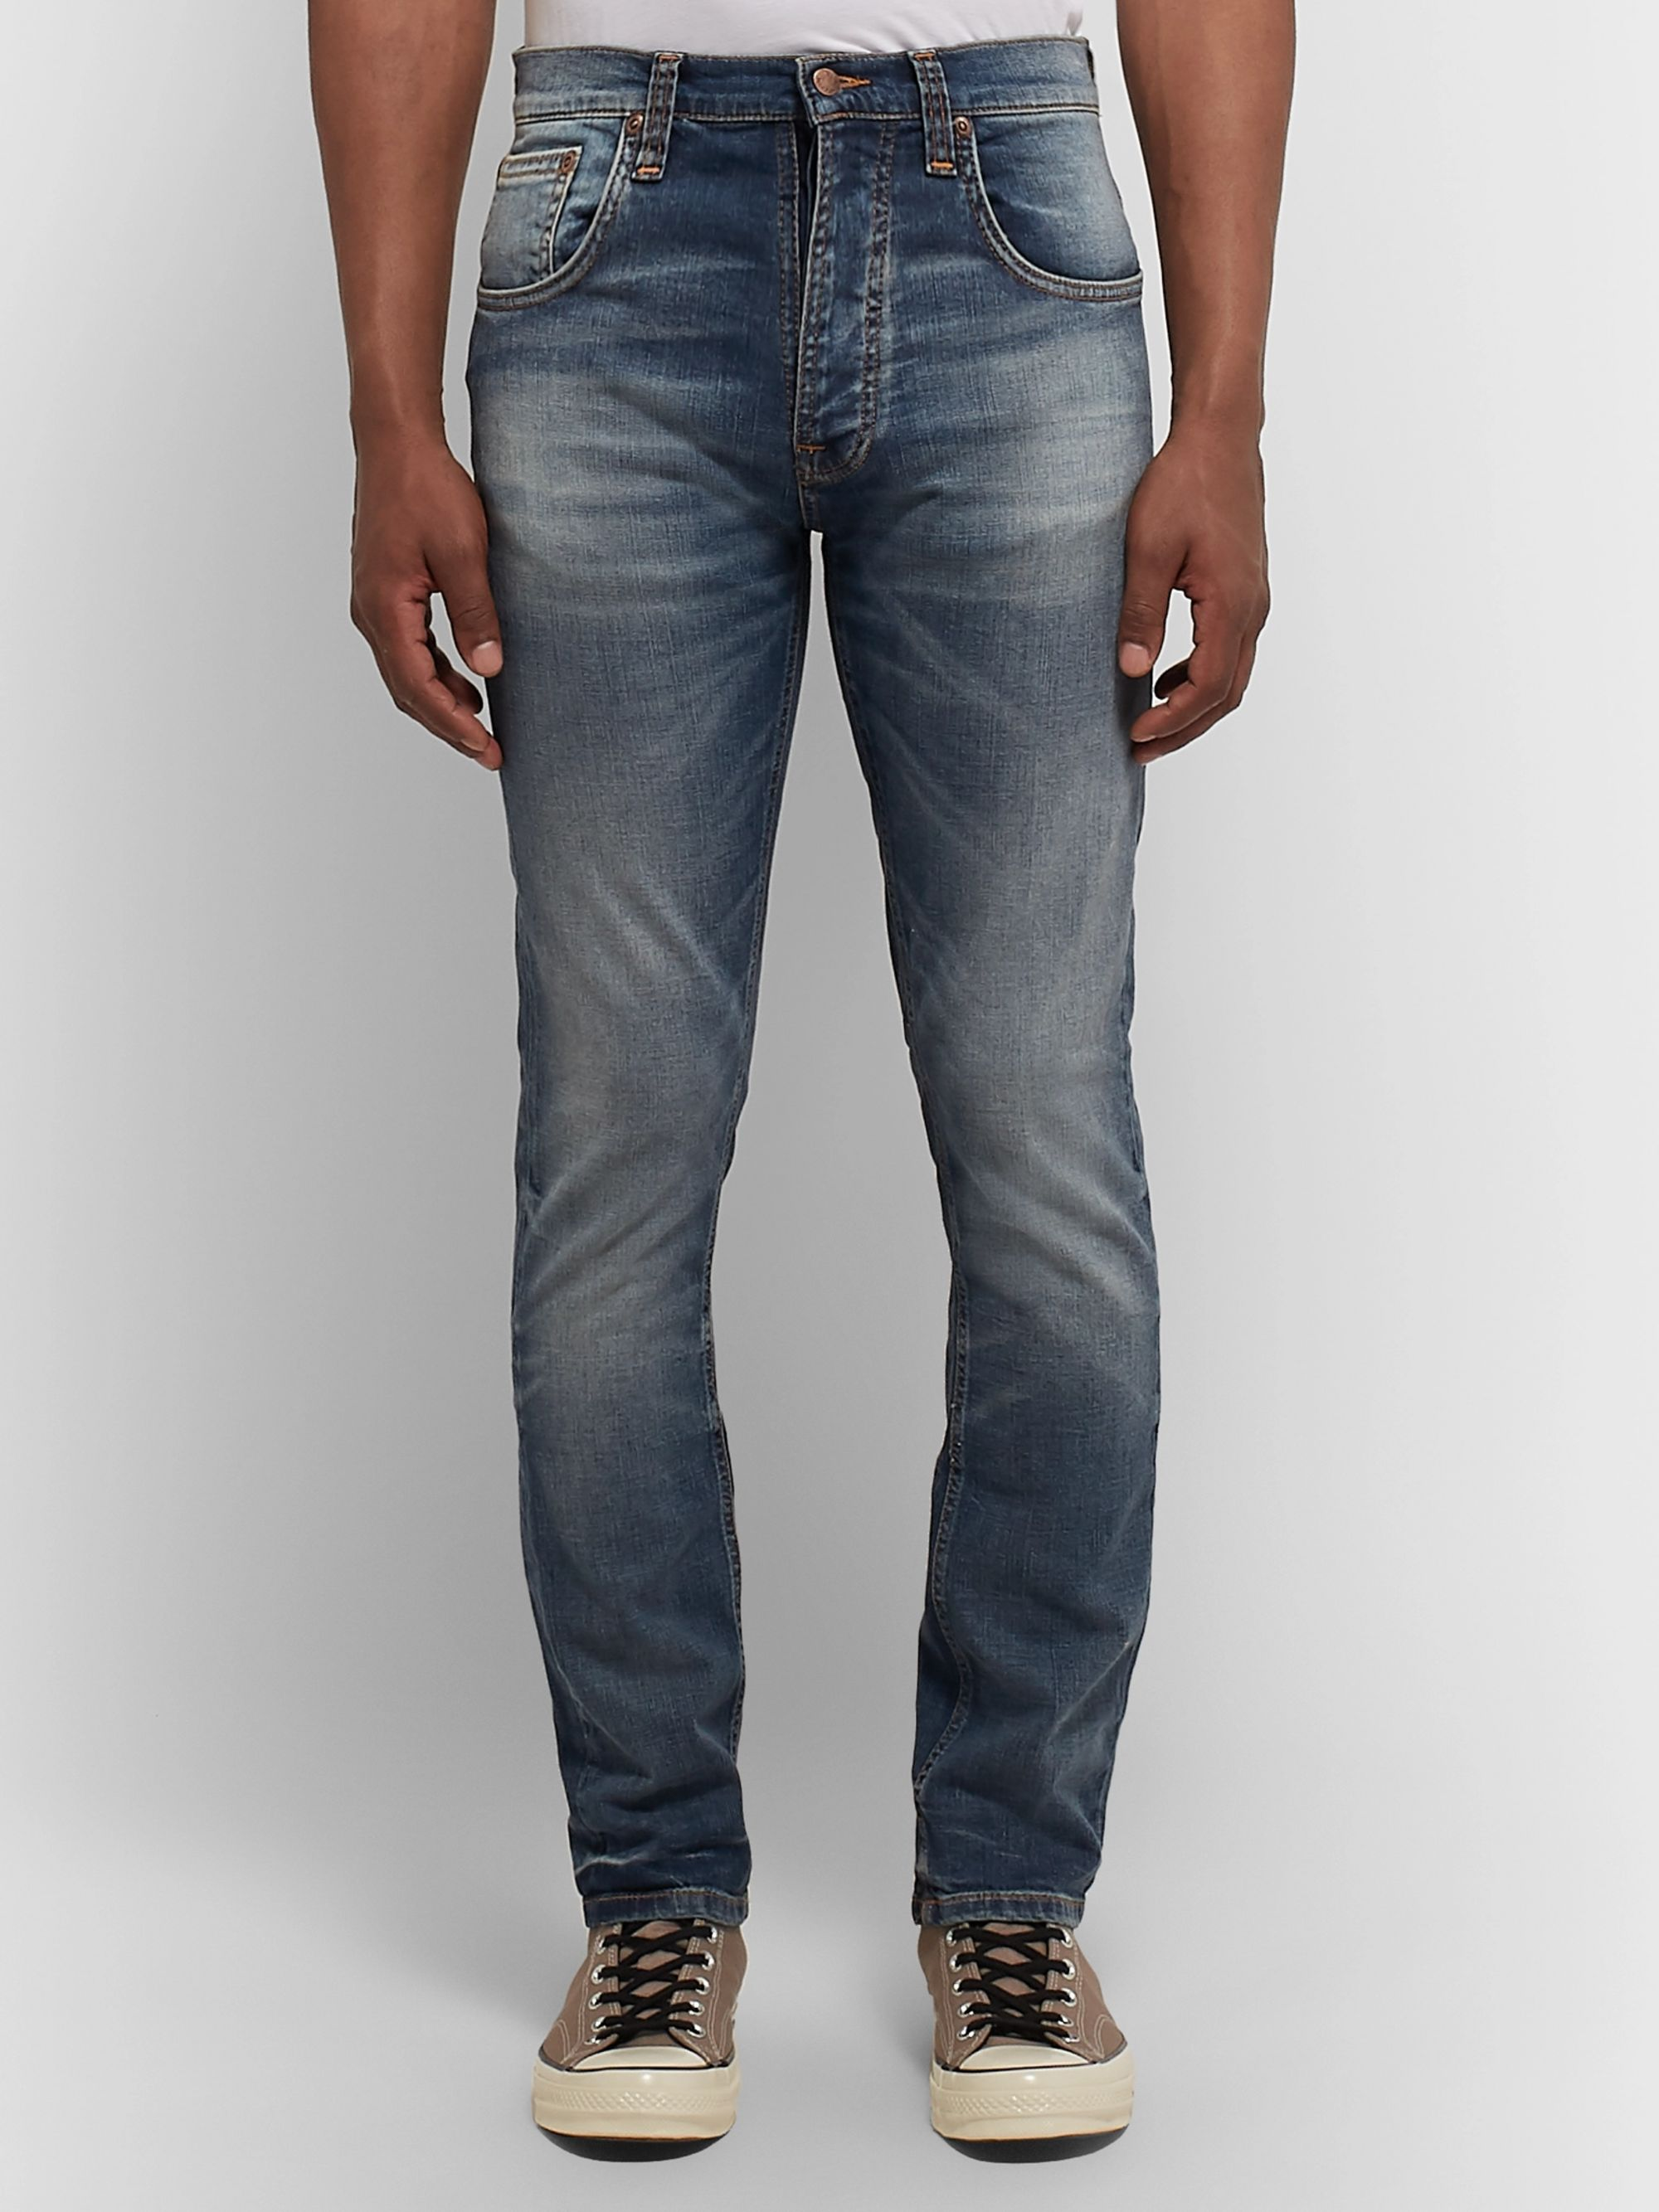 Nudie Jeans Grim Tim Slim-Fit Organic Stretch-Denim Jeans